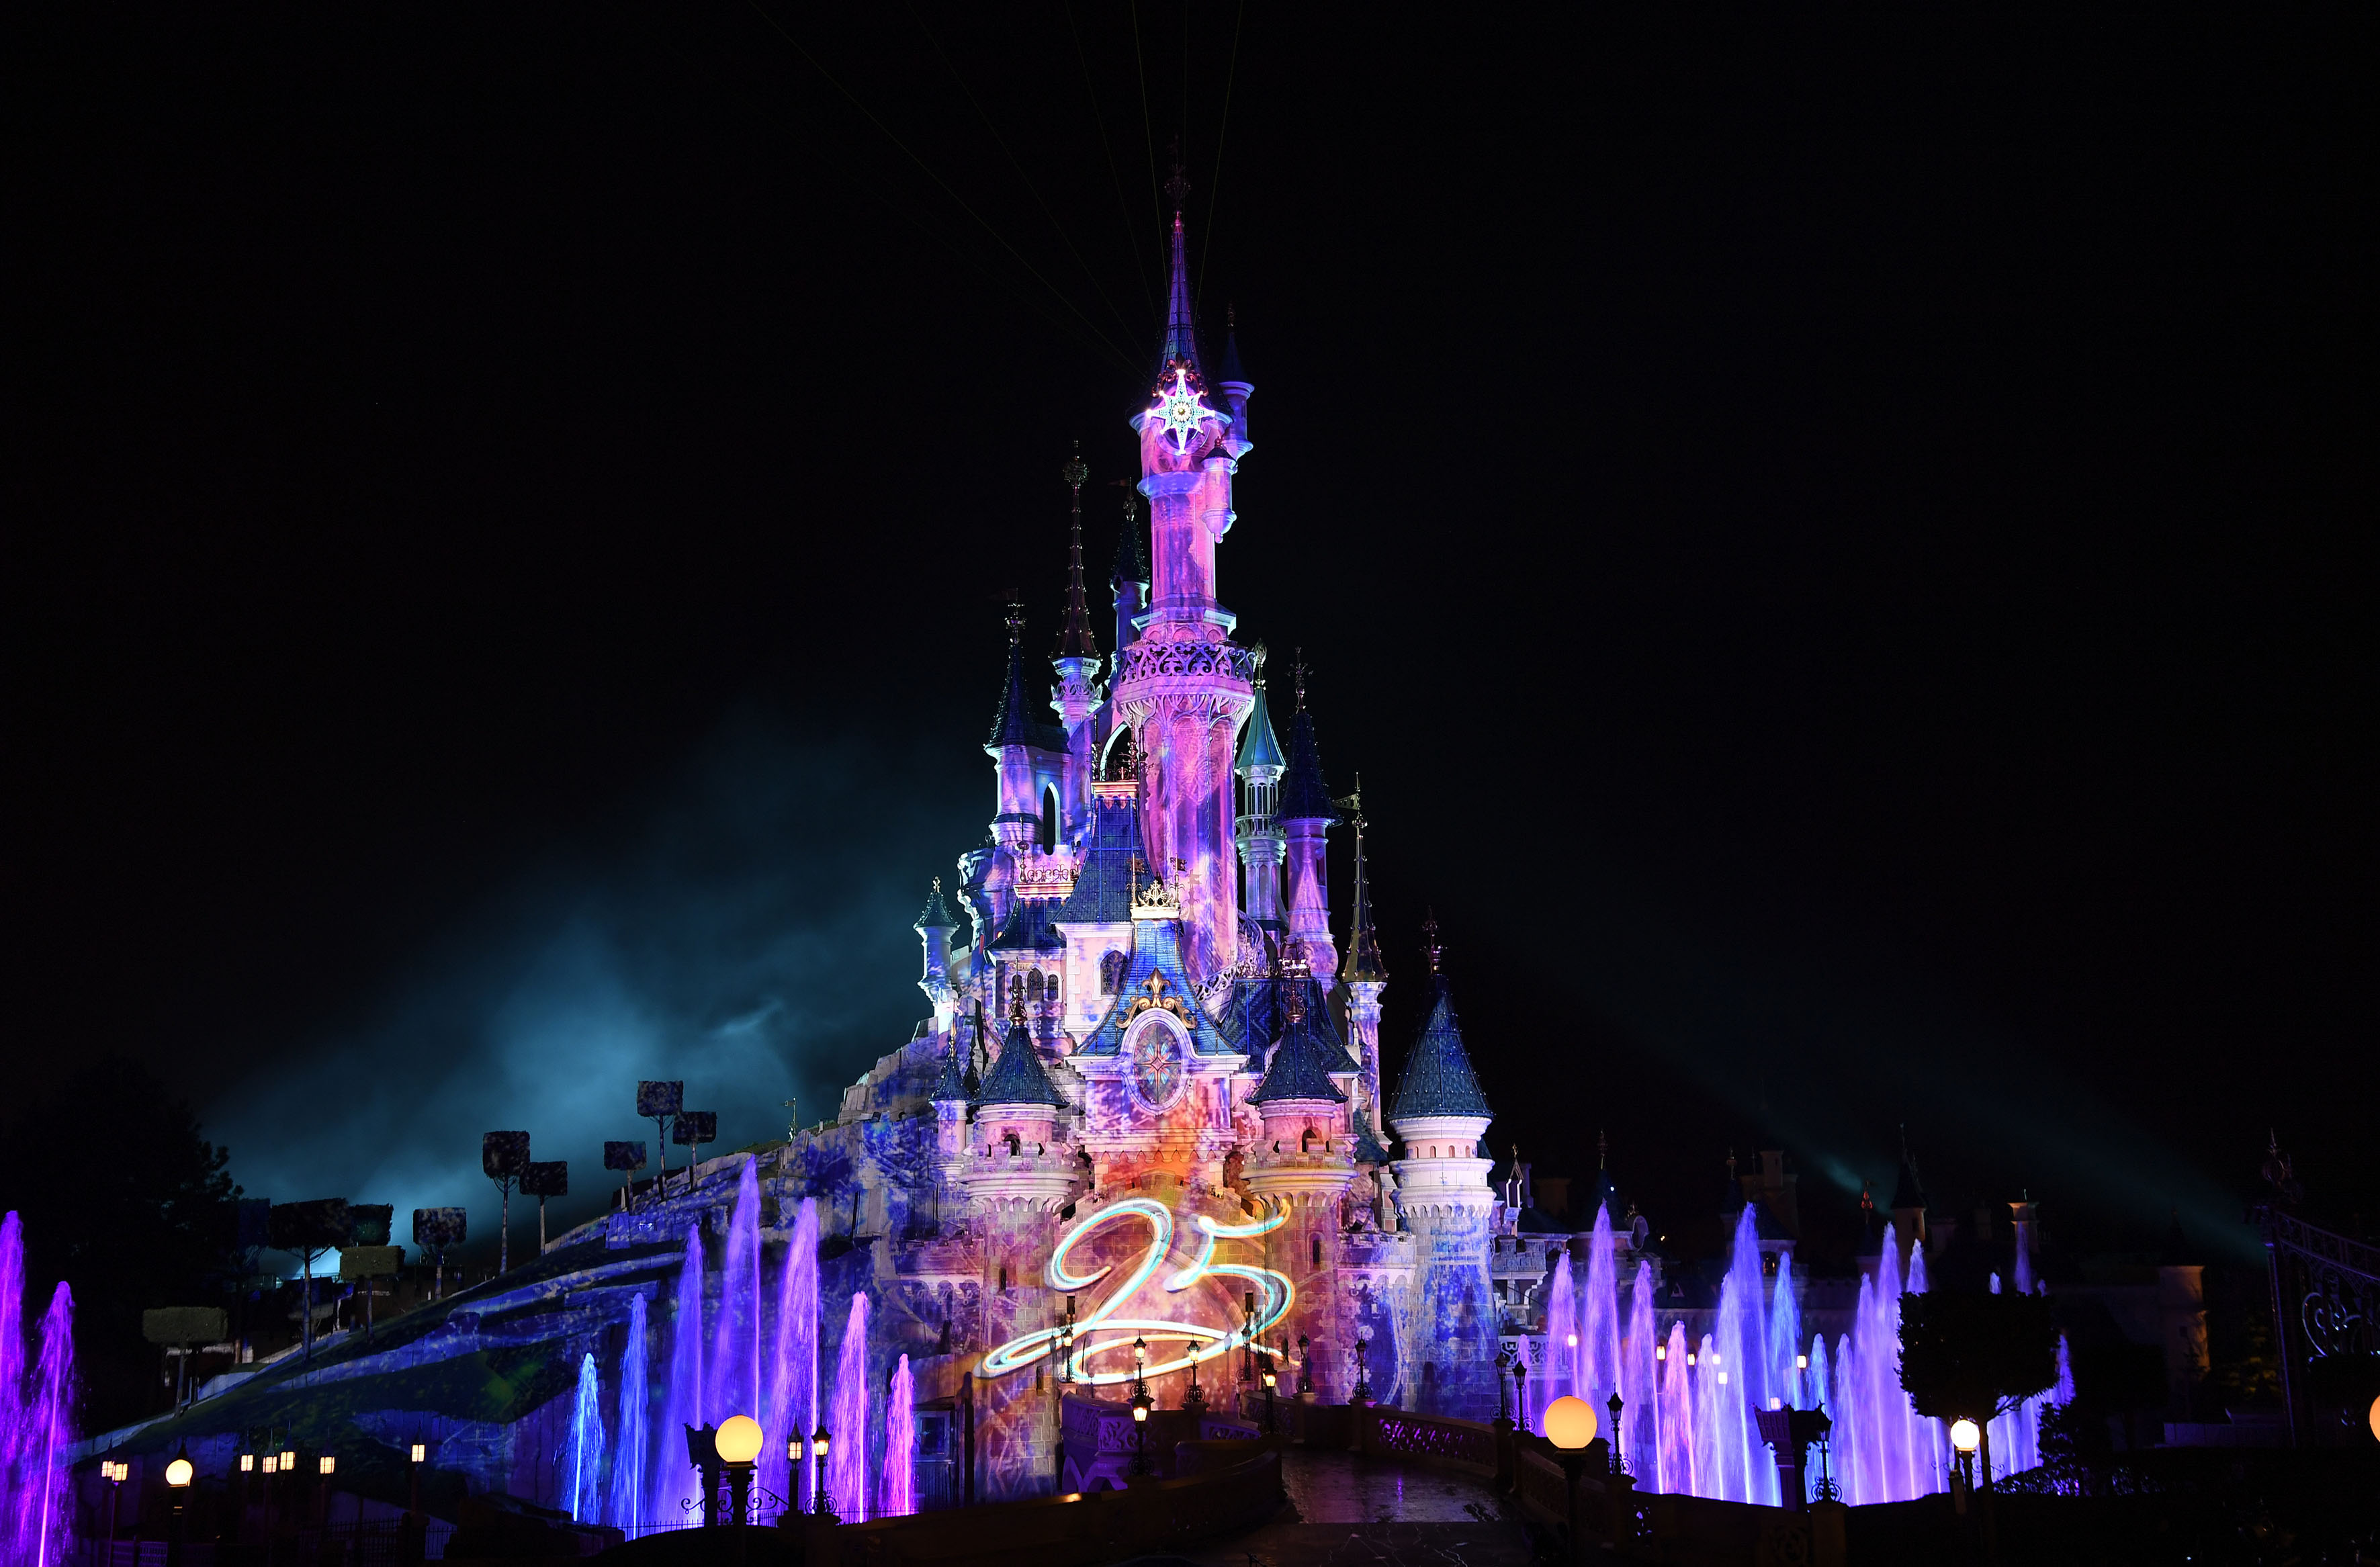 Disney Illuminations: How It Works Now and How I'd Like It